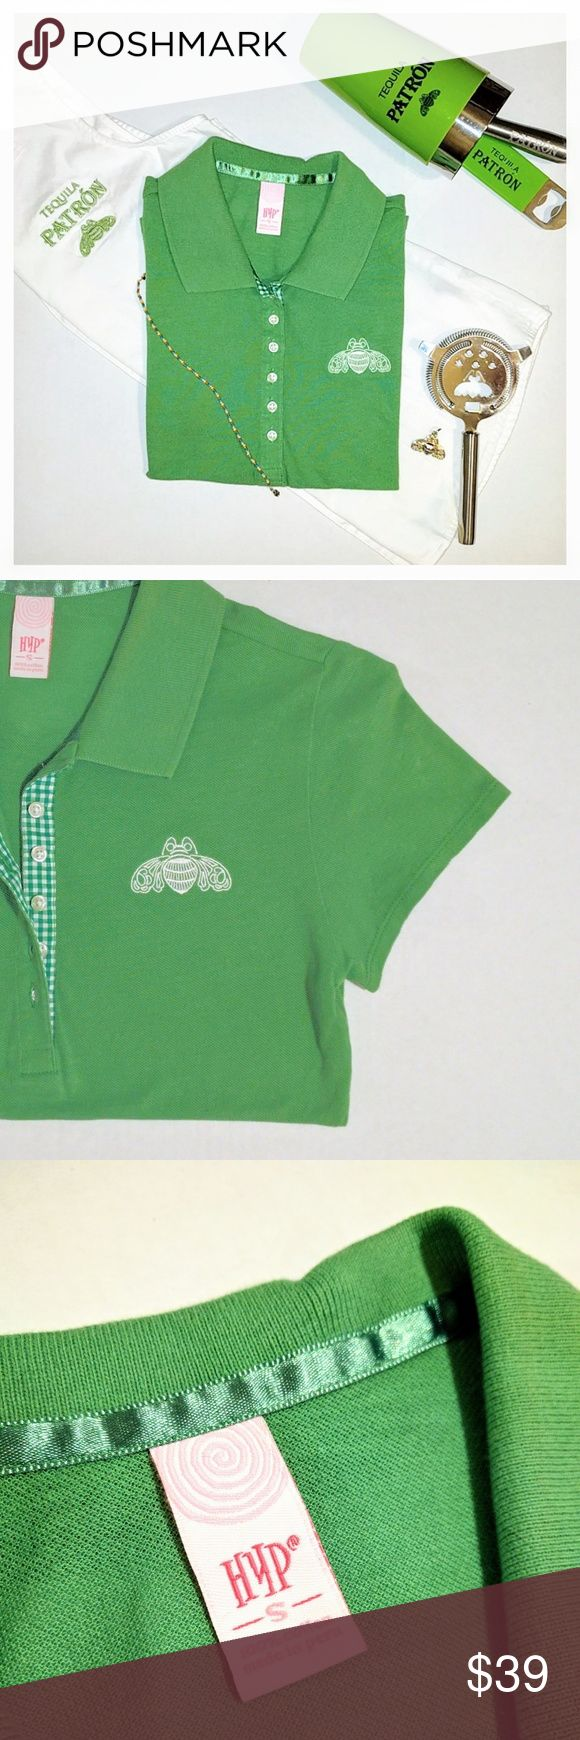 🍀 {Patron Tequila} 2 tops + key chain Patron Tequila * Green Polo Shirt w/gingham print under buttons - Small  * White Sleeveless Collared Blouse with button front - Medium * Both have signature Patron Tequila logos and bumble bees embroidered on * BOTH TOPS ARE FITTED & WOULD FIT A SMALL * Silver Bumble Bee Patron Keychain * BRAND NEW FLAWLESS  * Top * Shirt * Golf * Spring * Summer * Sponsor * Preppy Patron Tequila Tops